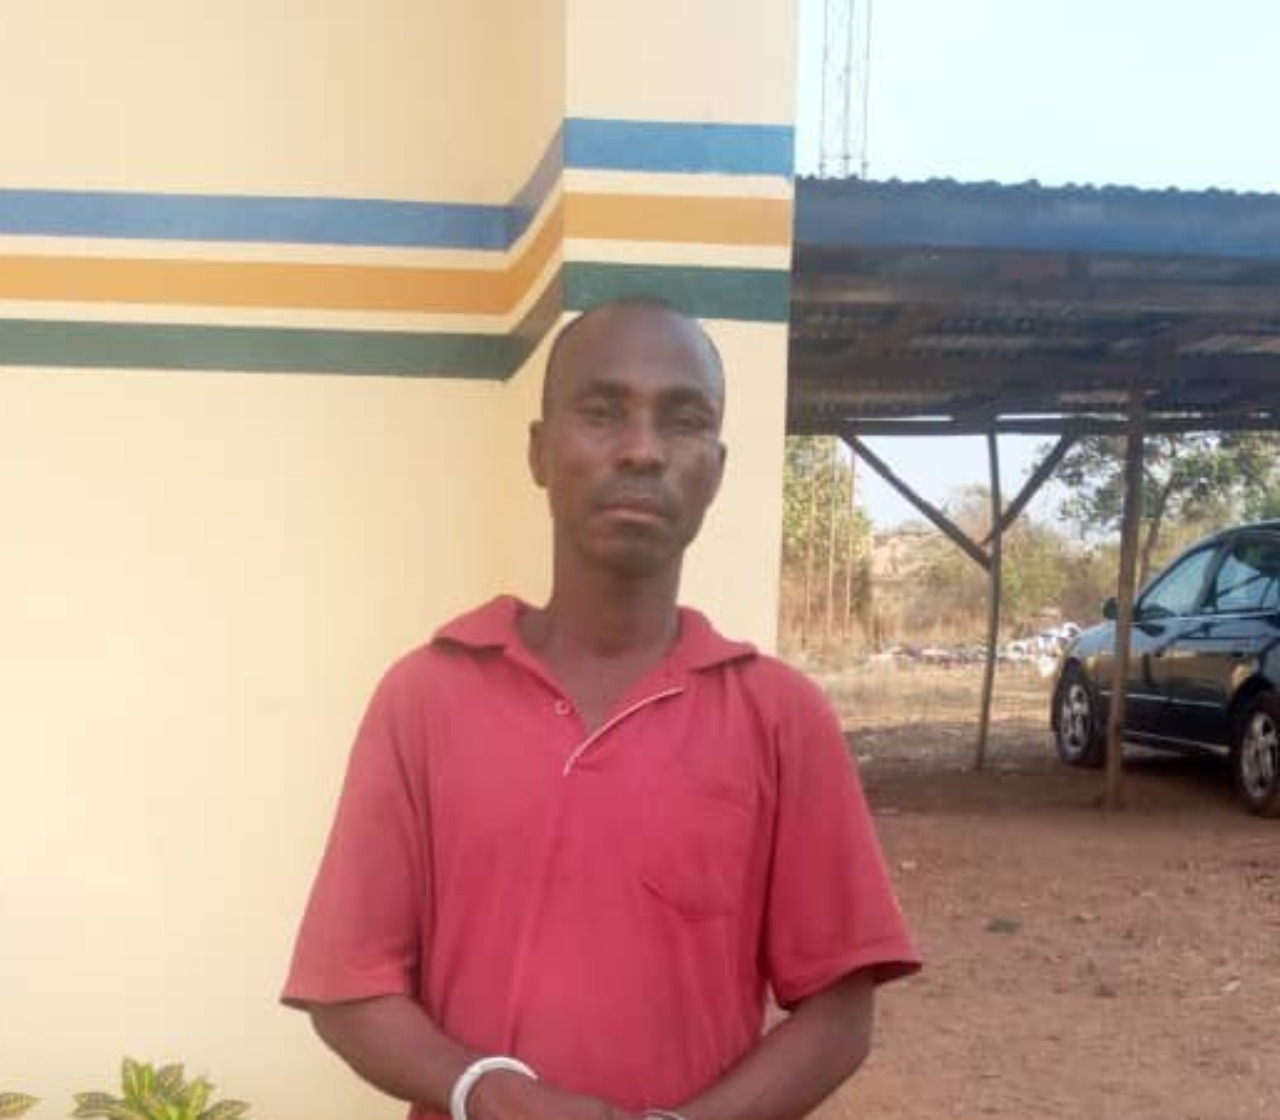 I only beat him with stick - Man confesses killing relative in Ogun